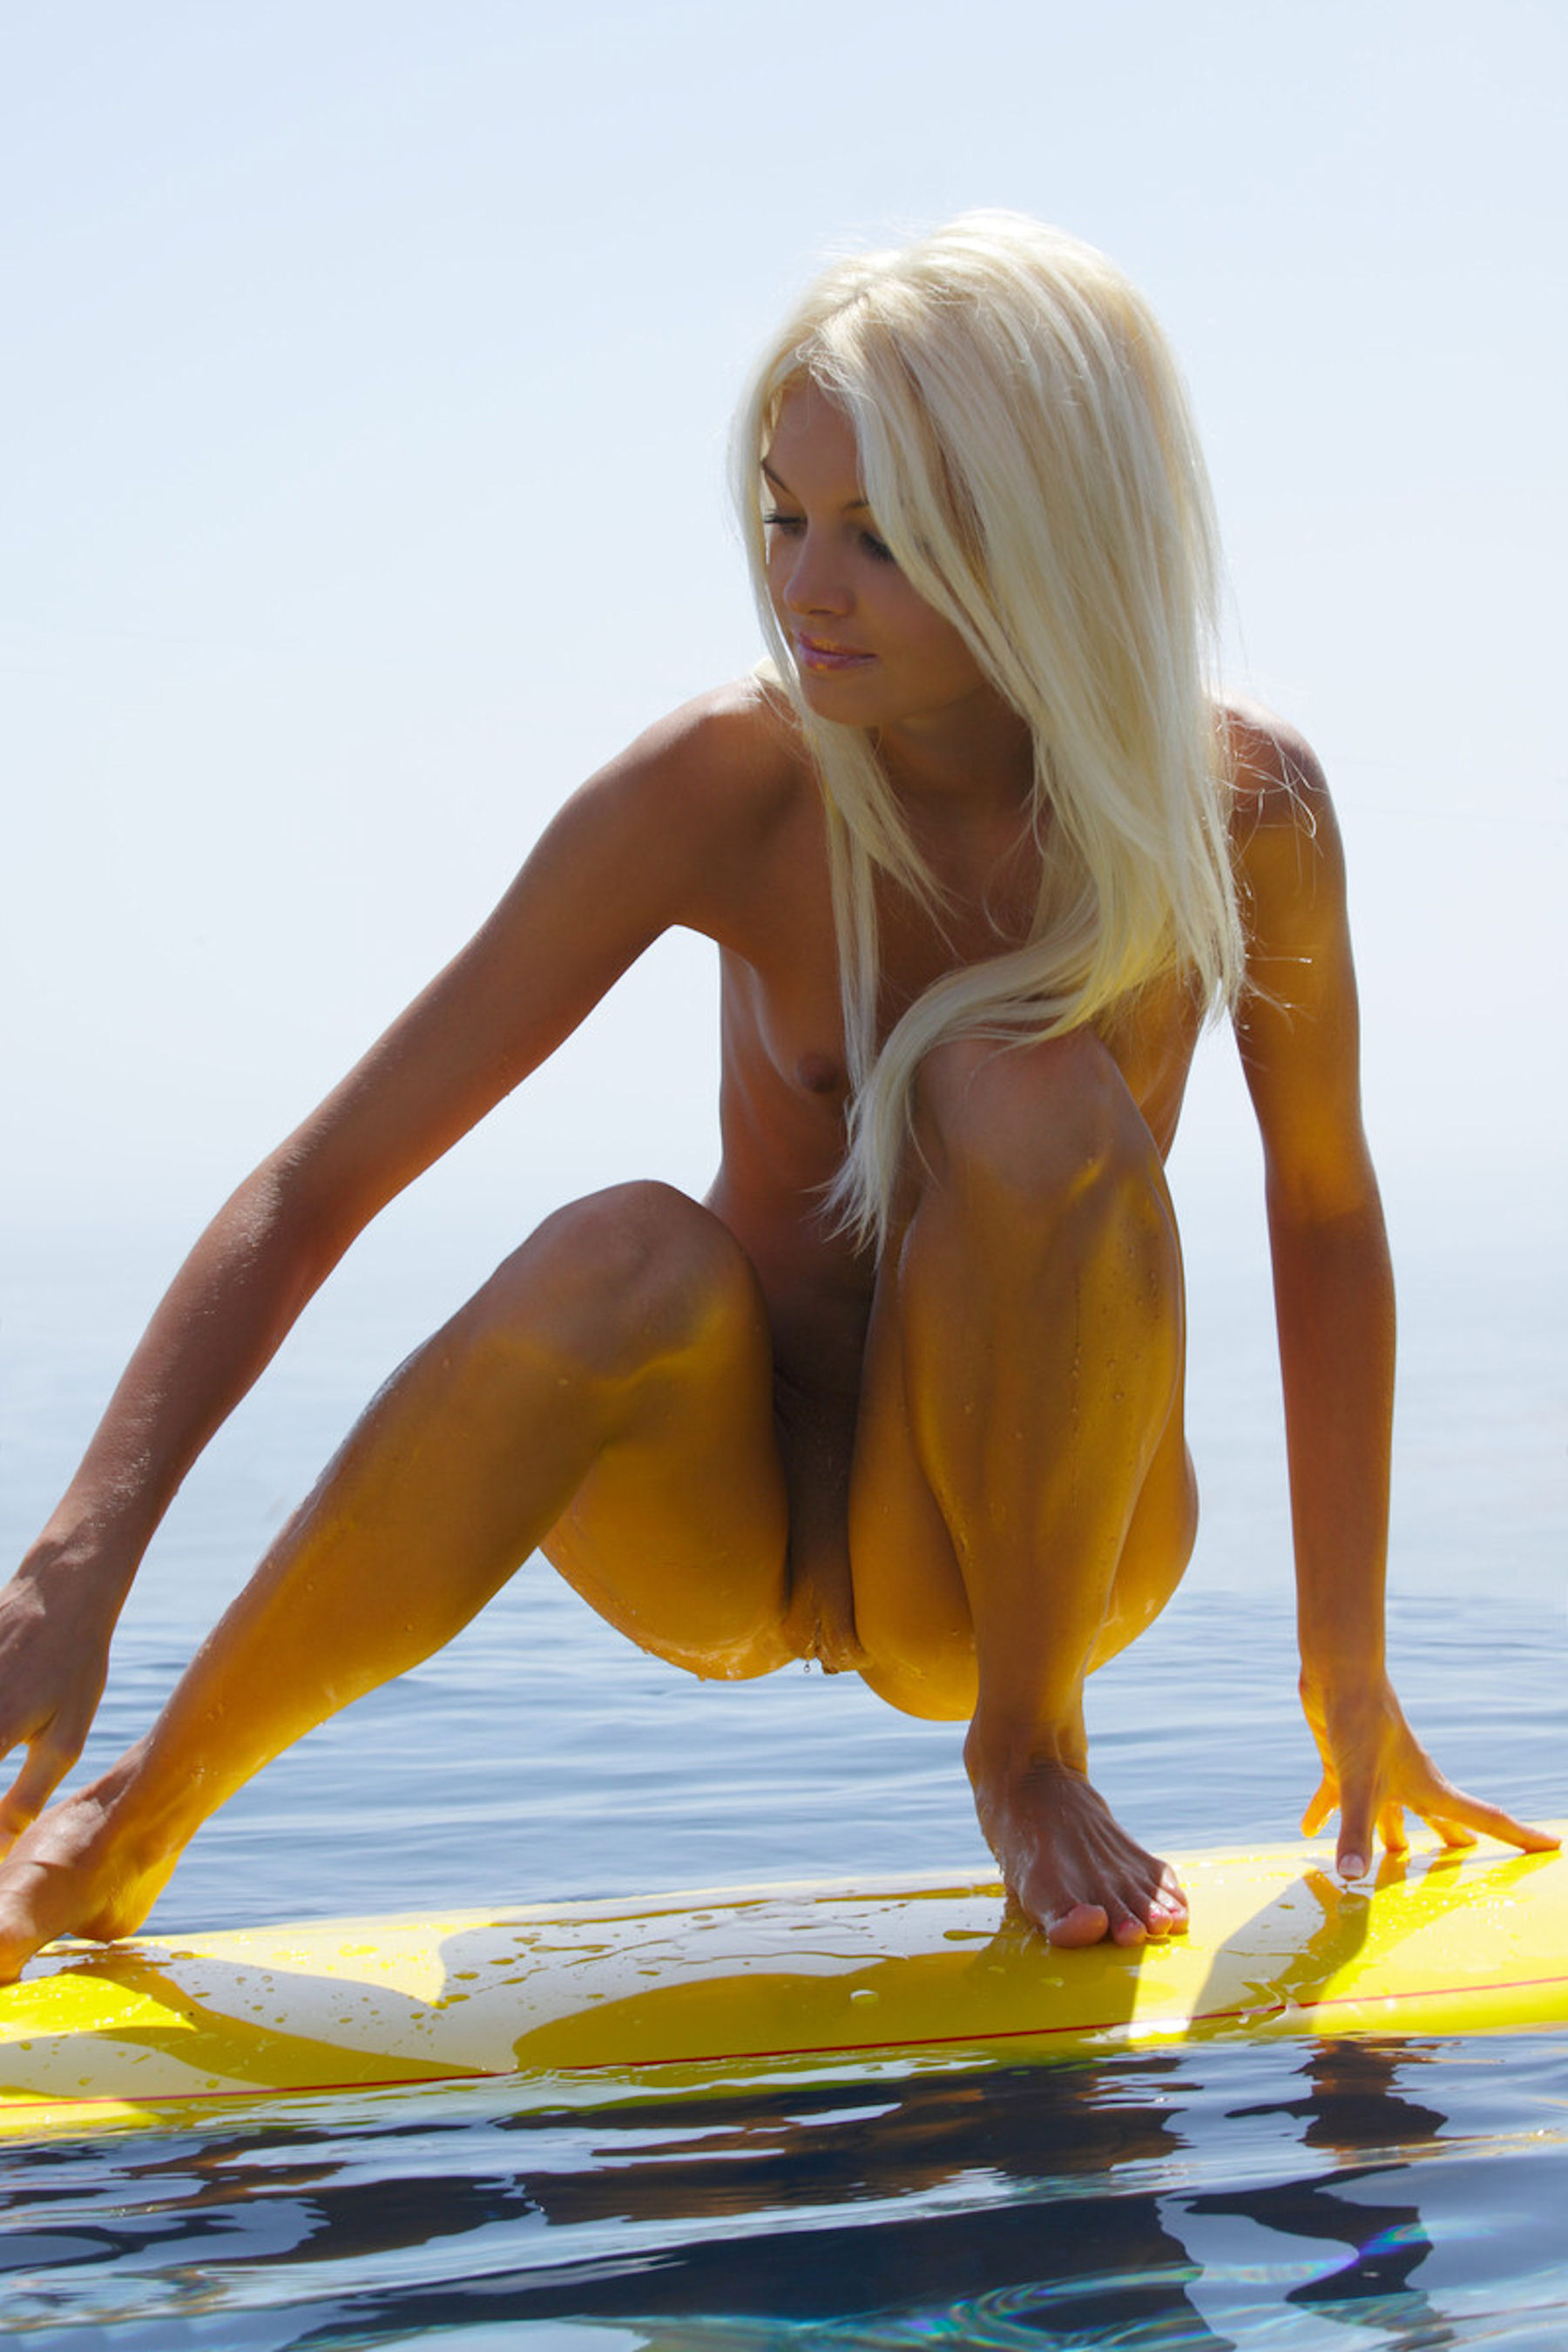 Beauty squatting on the surfboard completely naked